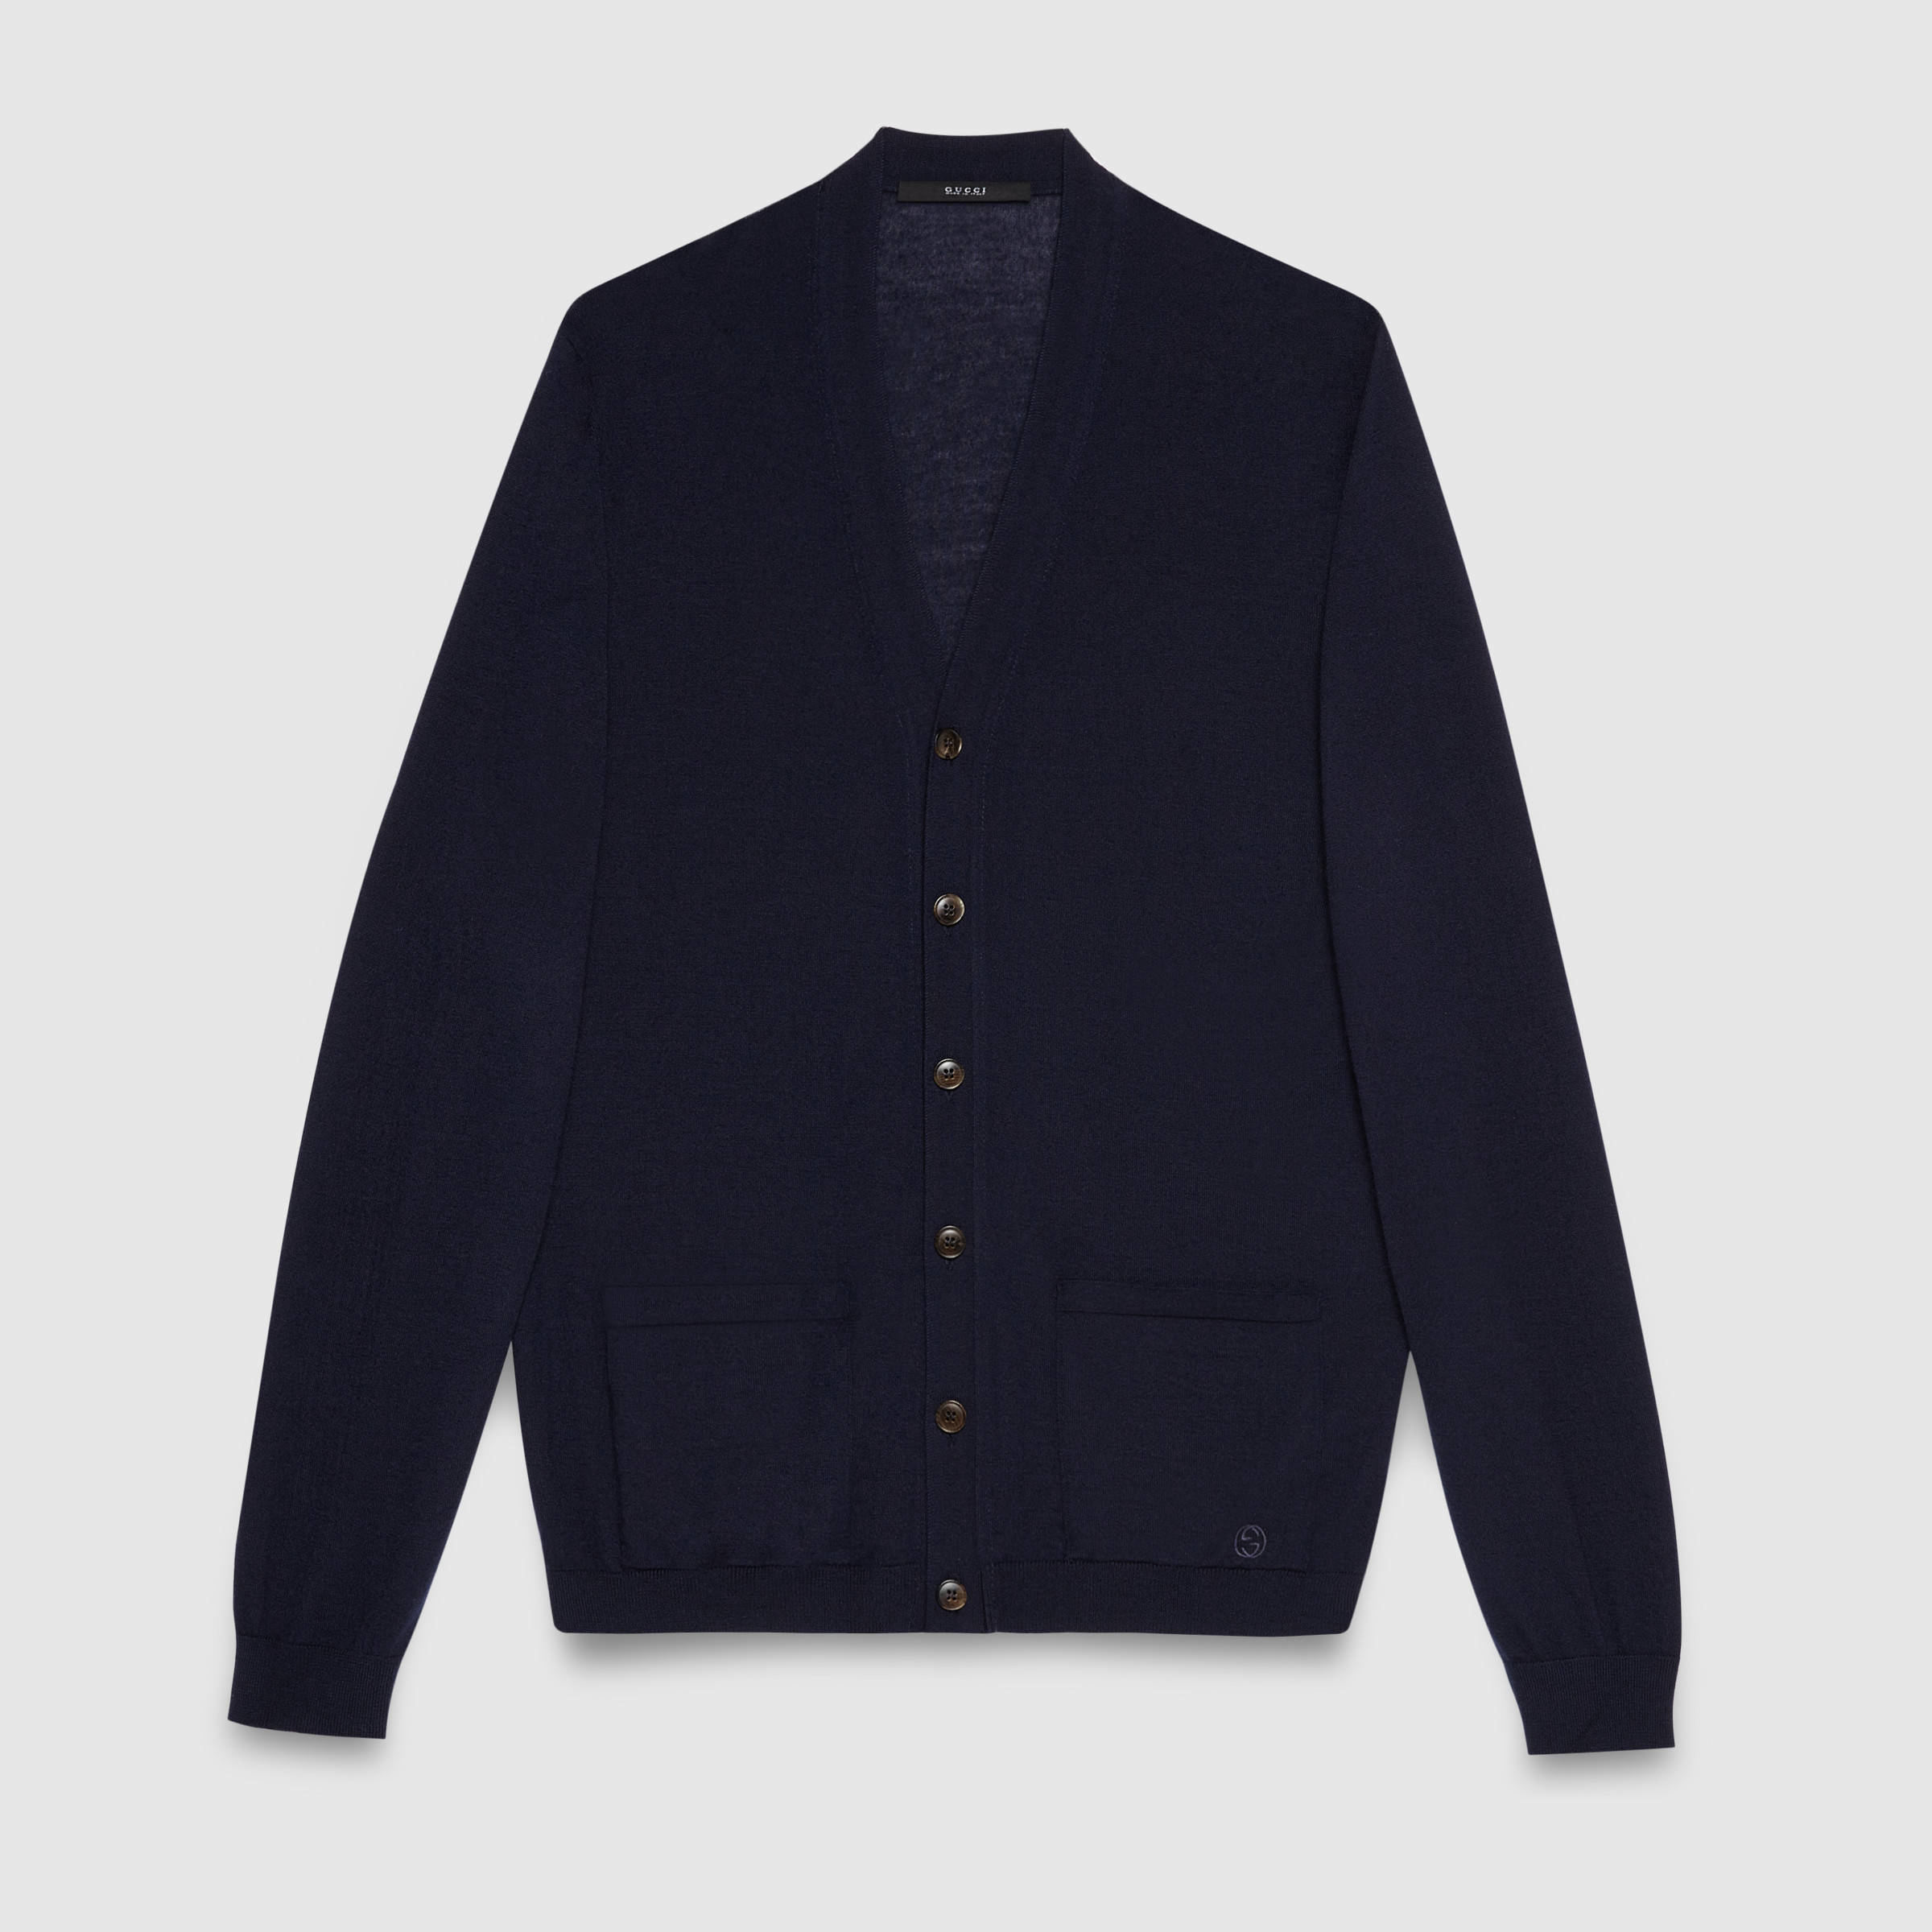 Gucci Cashmere Cardigan Sweater in Blue for Men | Lyst